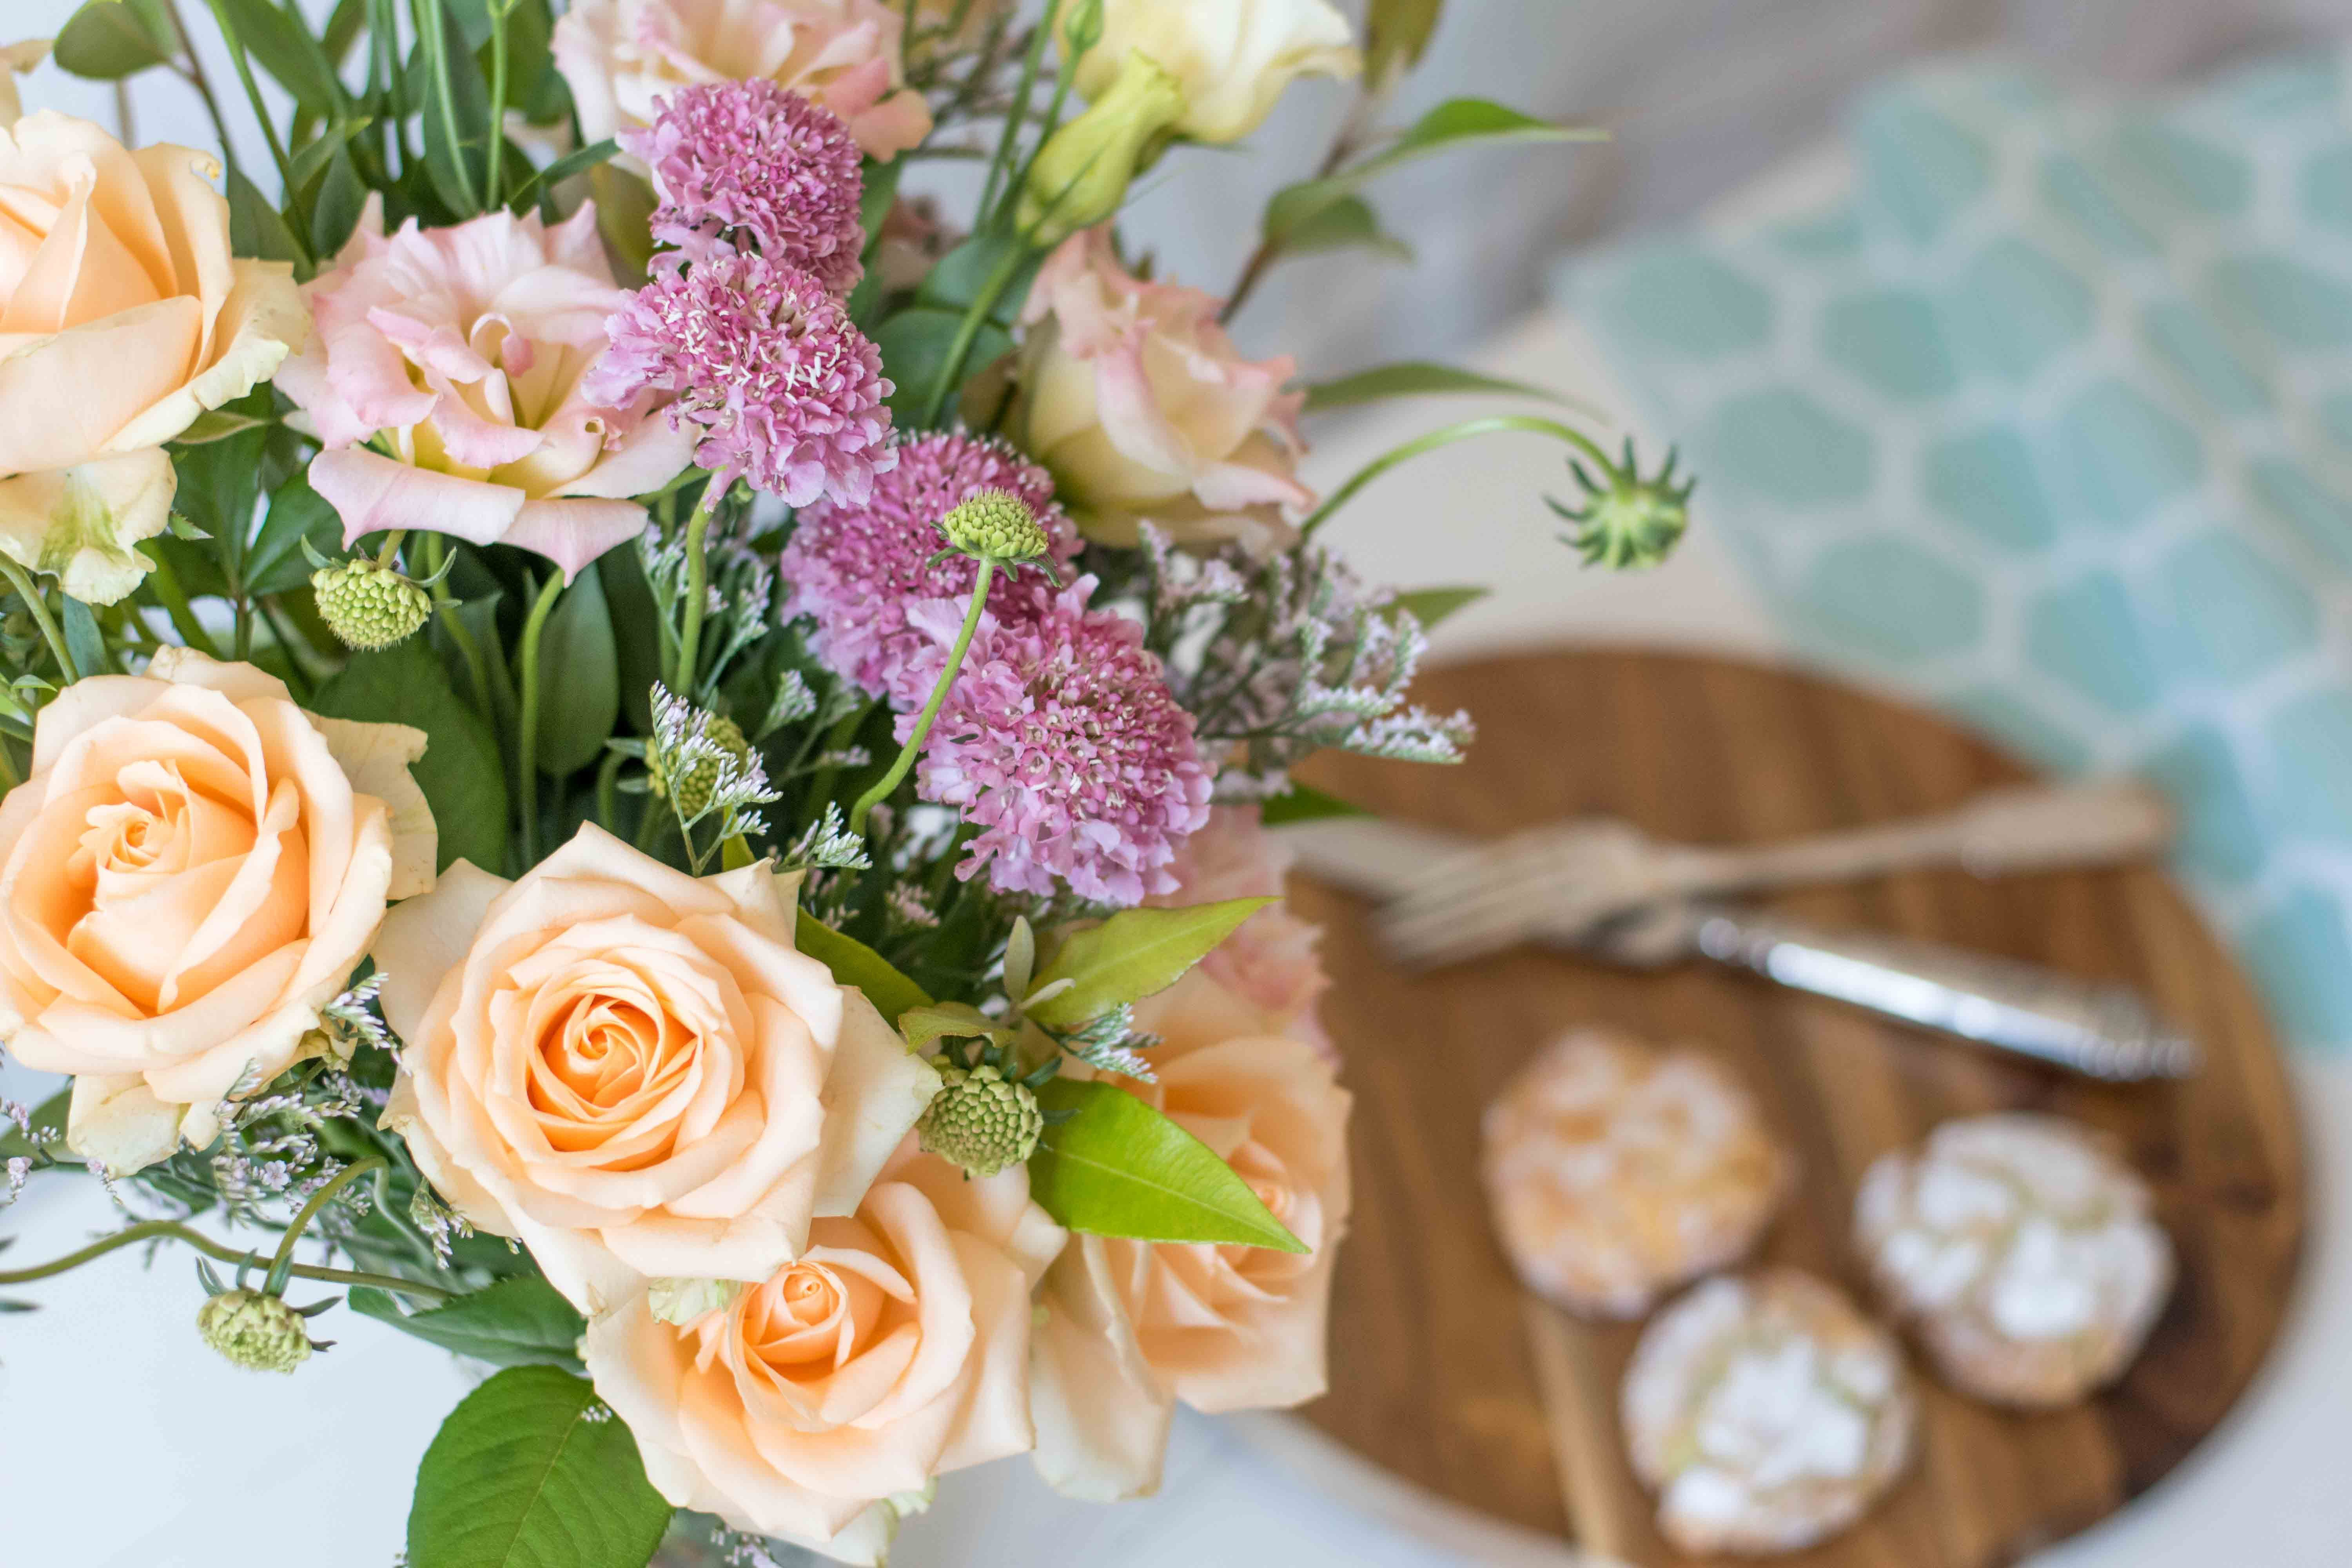 Stunning Apricot Rose pairs sublimely with Scabiosa, Misty